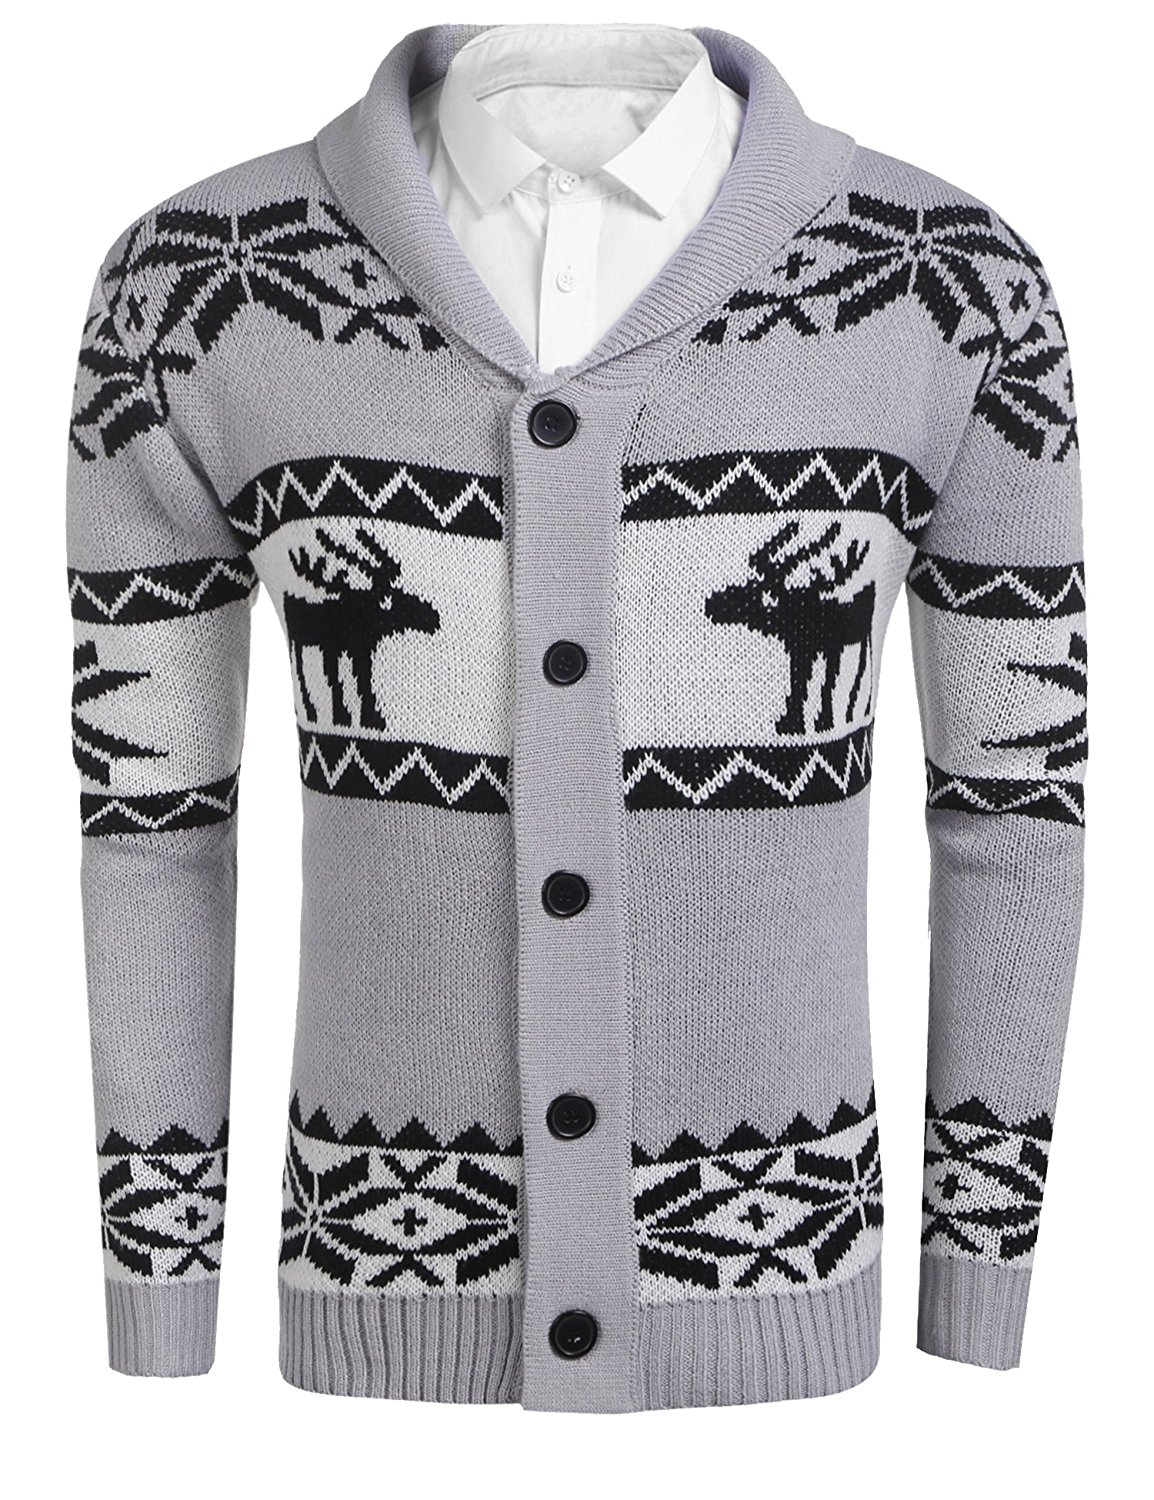 8225befa6 Get Quotations · Misakia Mens Christmas Reindeer Cardigan Shawl Collar Long  Sleeve Snowflake Pattern Button Cardigan Sweater